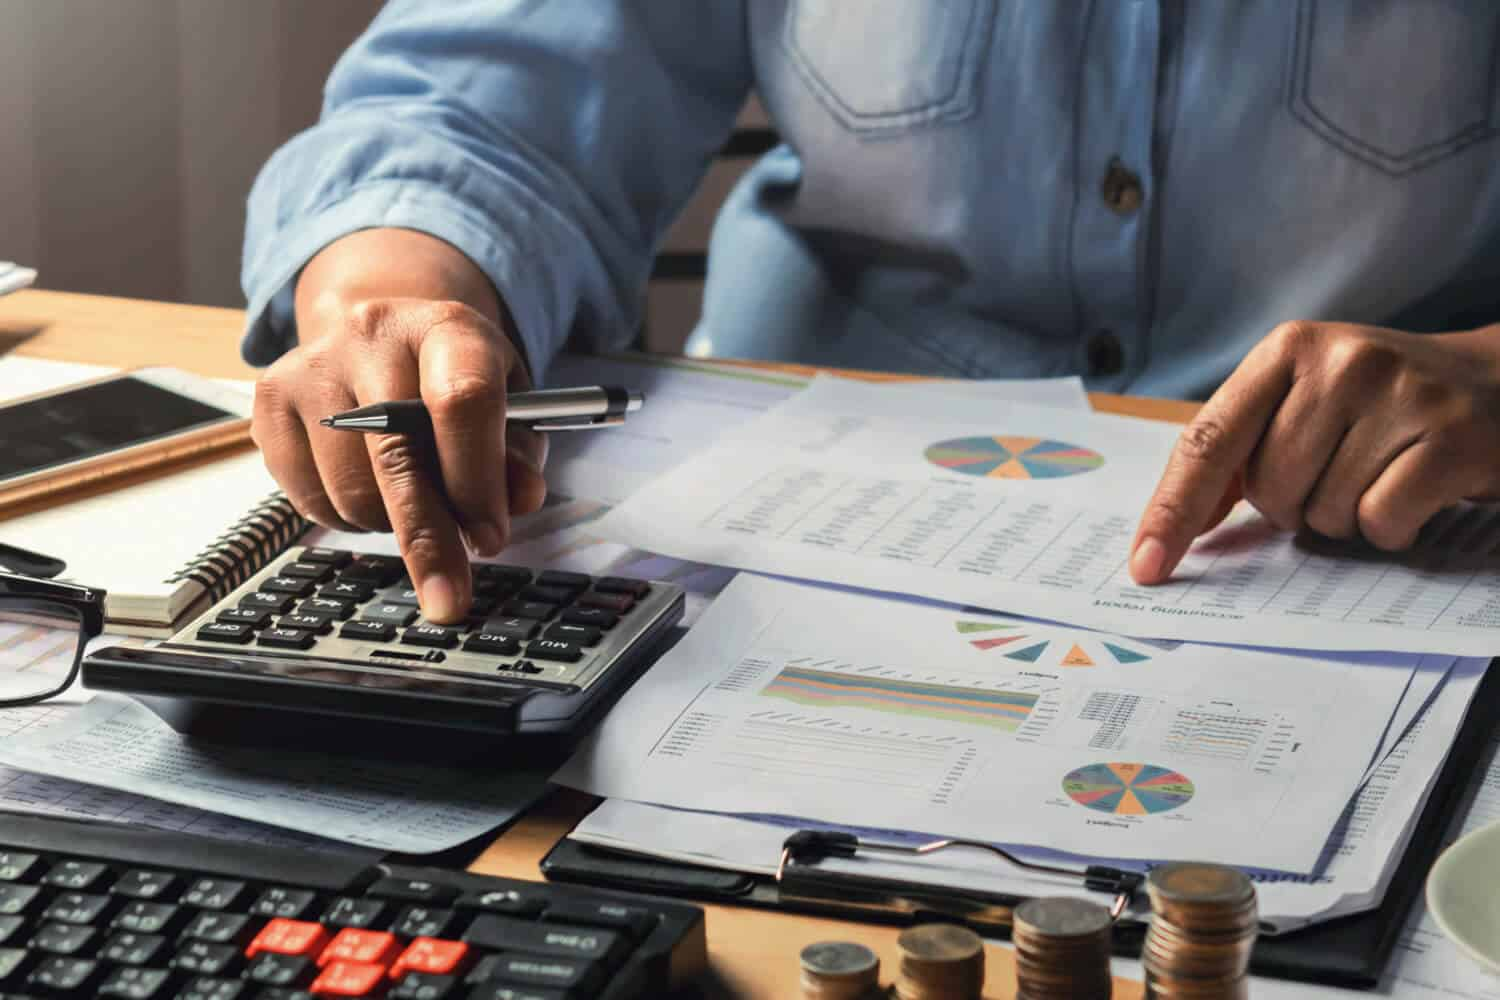 accounting-concept-businesswoman-working-using-calculator-with-money-stack-office-1[1]